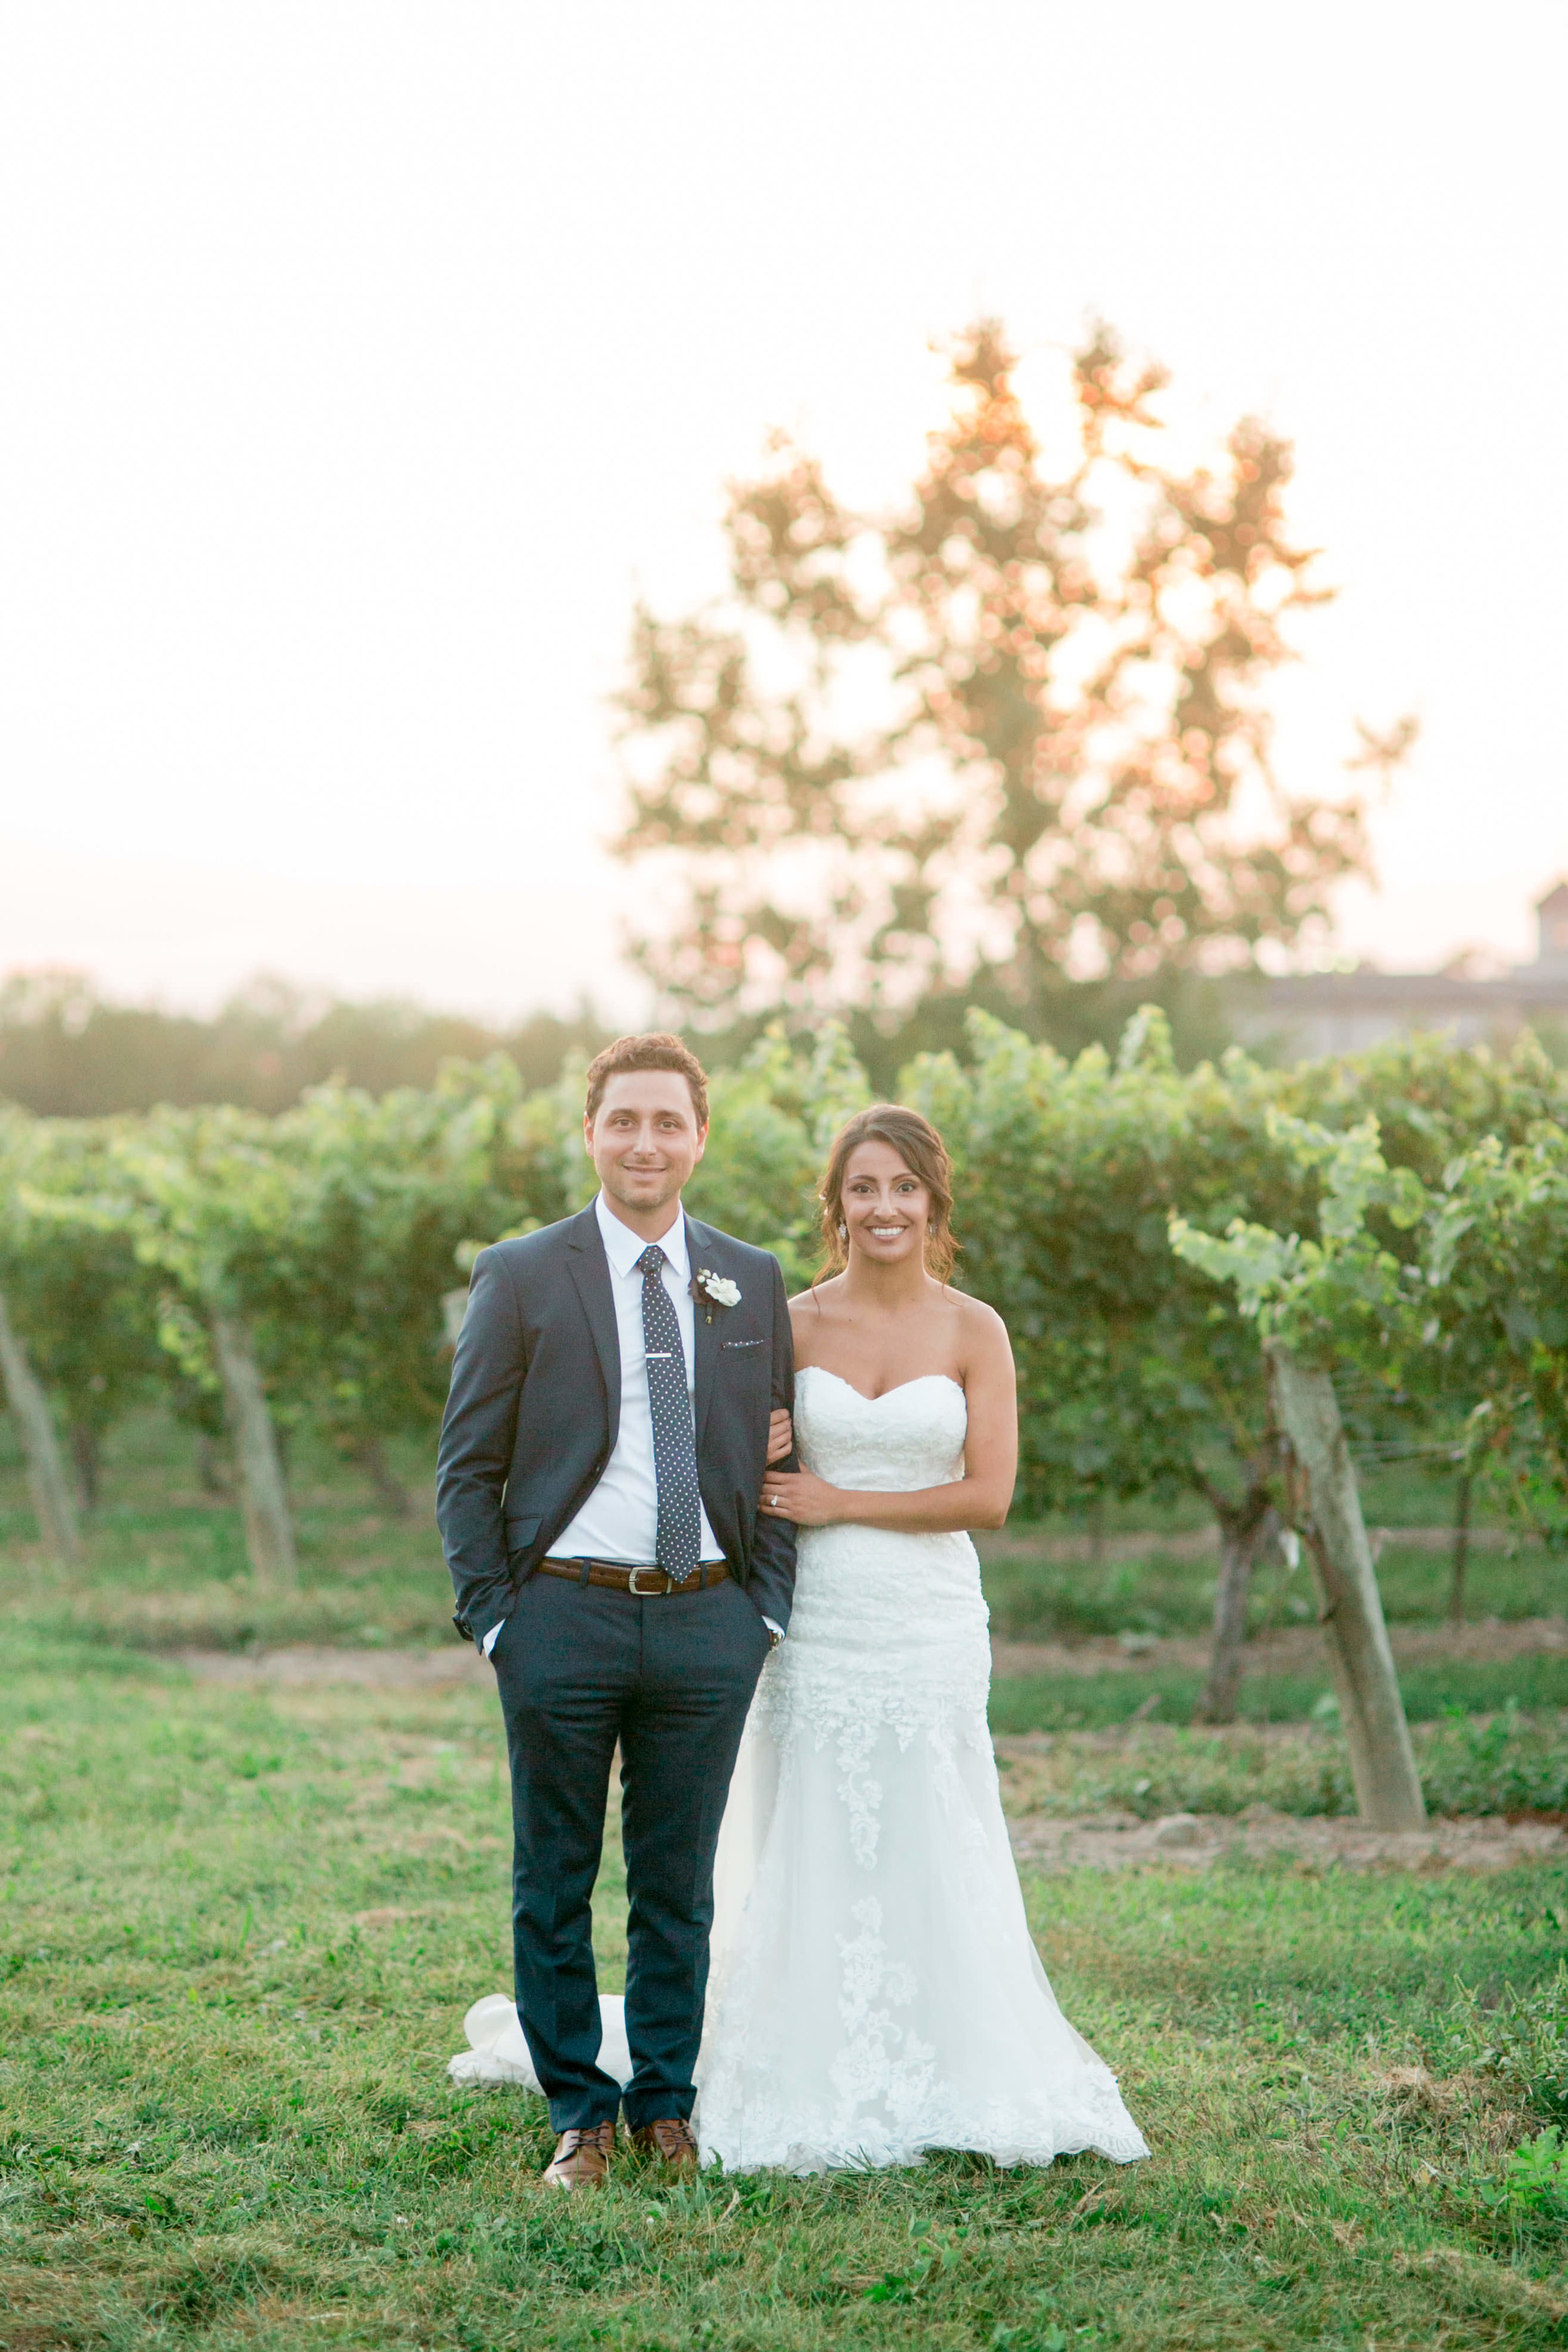 Sabrina___Jonathan_Wedding___High_Res._Finals_Daniel_Ricci_Weddings_648.jpg